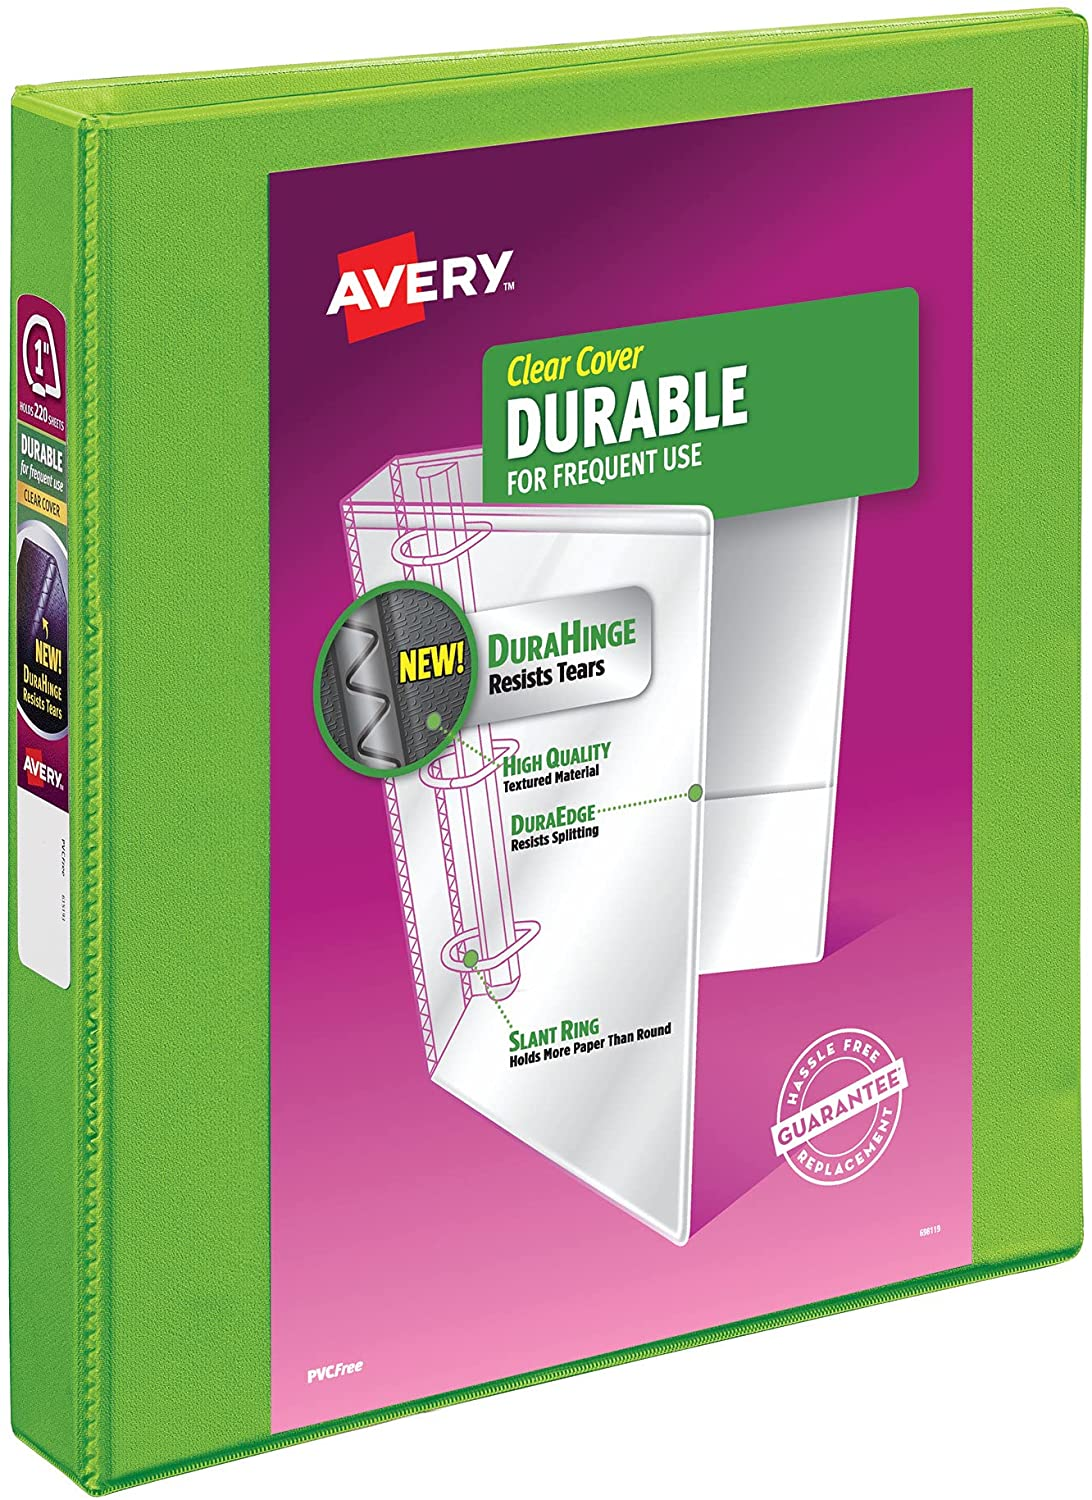 Avery Durable View 3 Ring Binder, 1 Inch Slant Rings, 1 Green Binder (17832) : Office Products